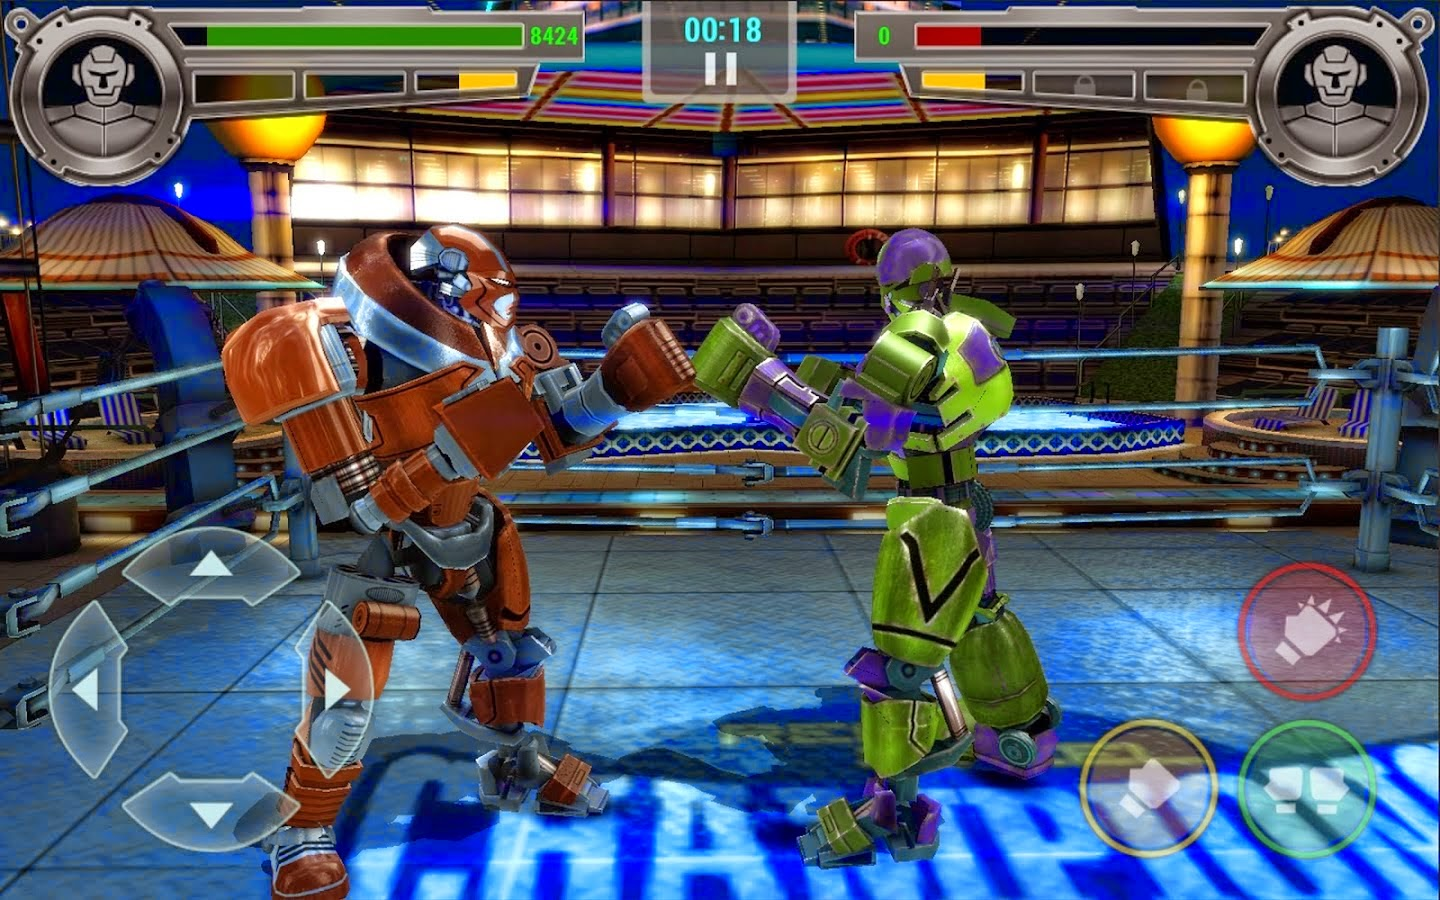 Real steel wrb mod apk unlimited money and gold ios